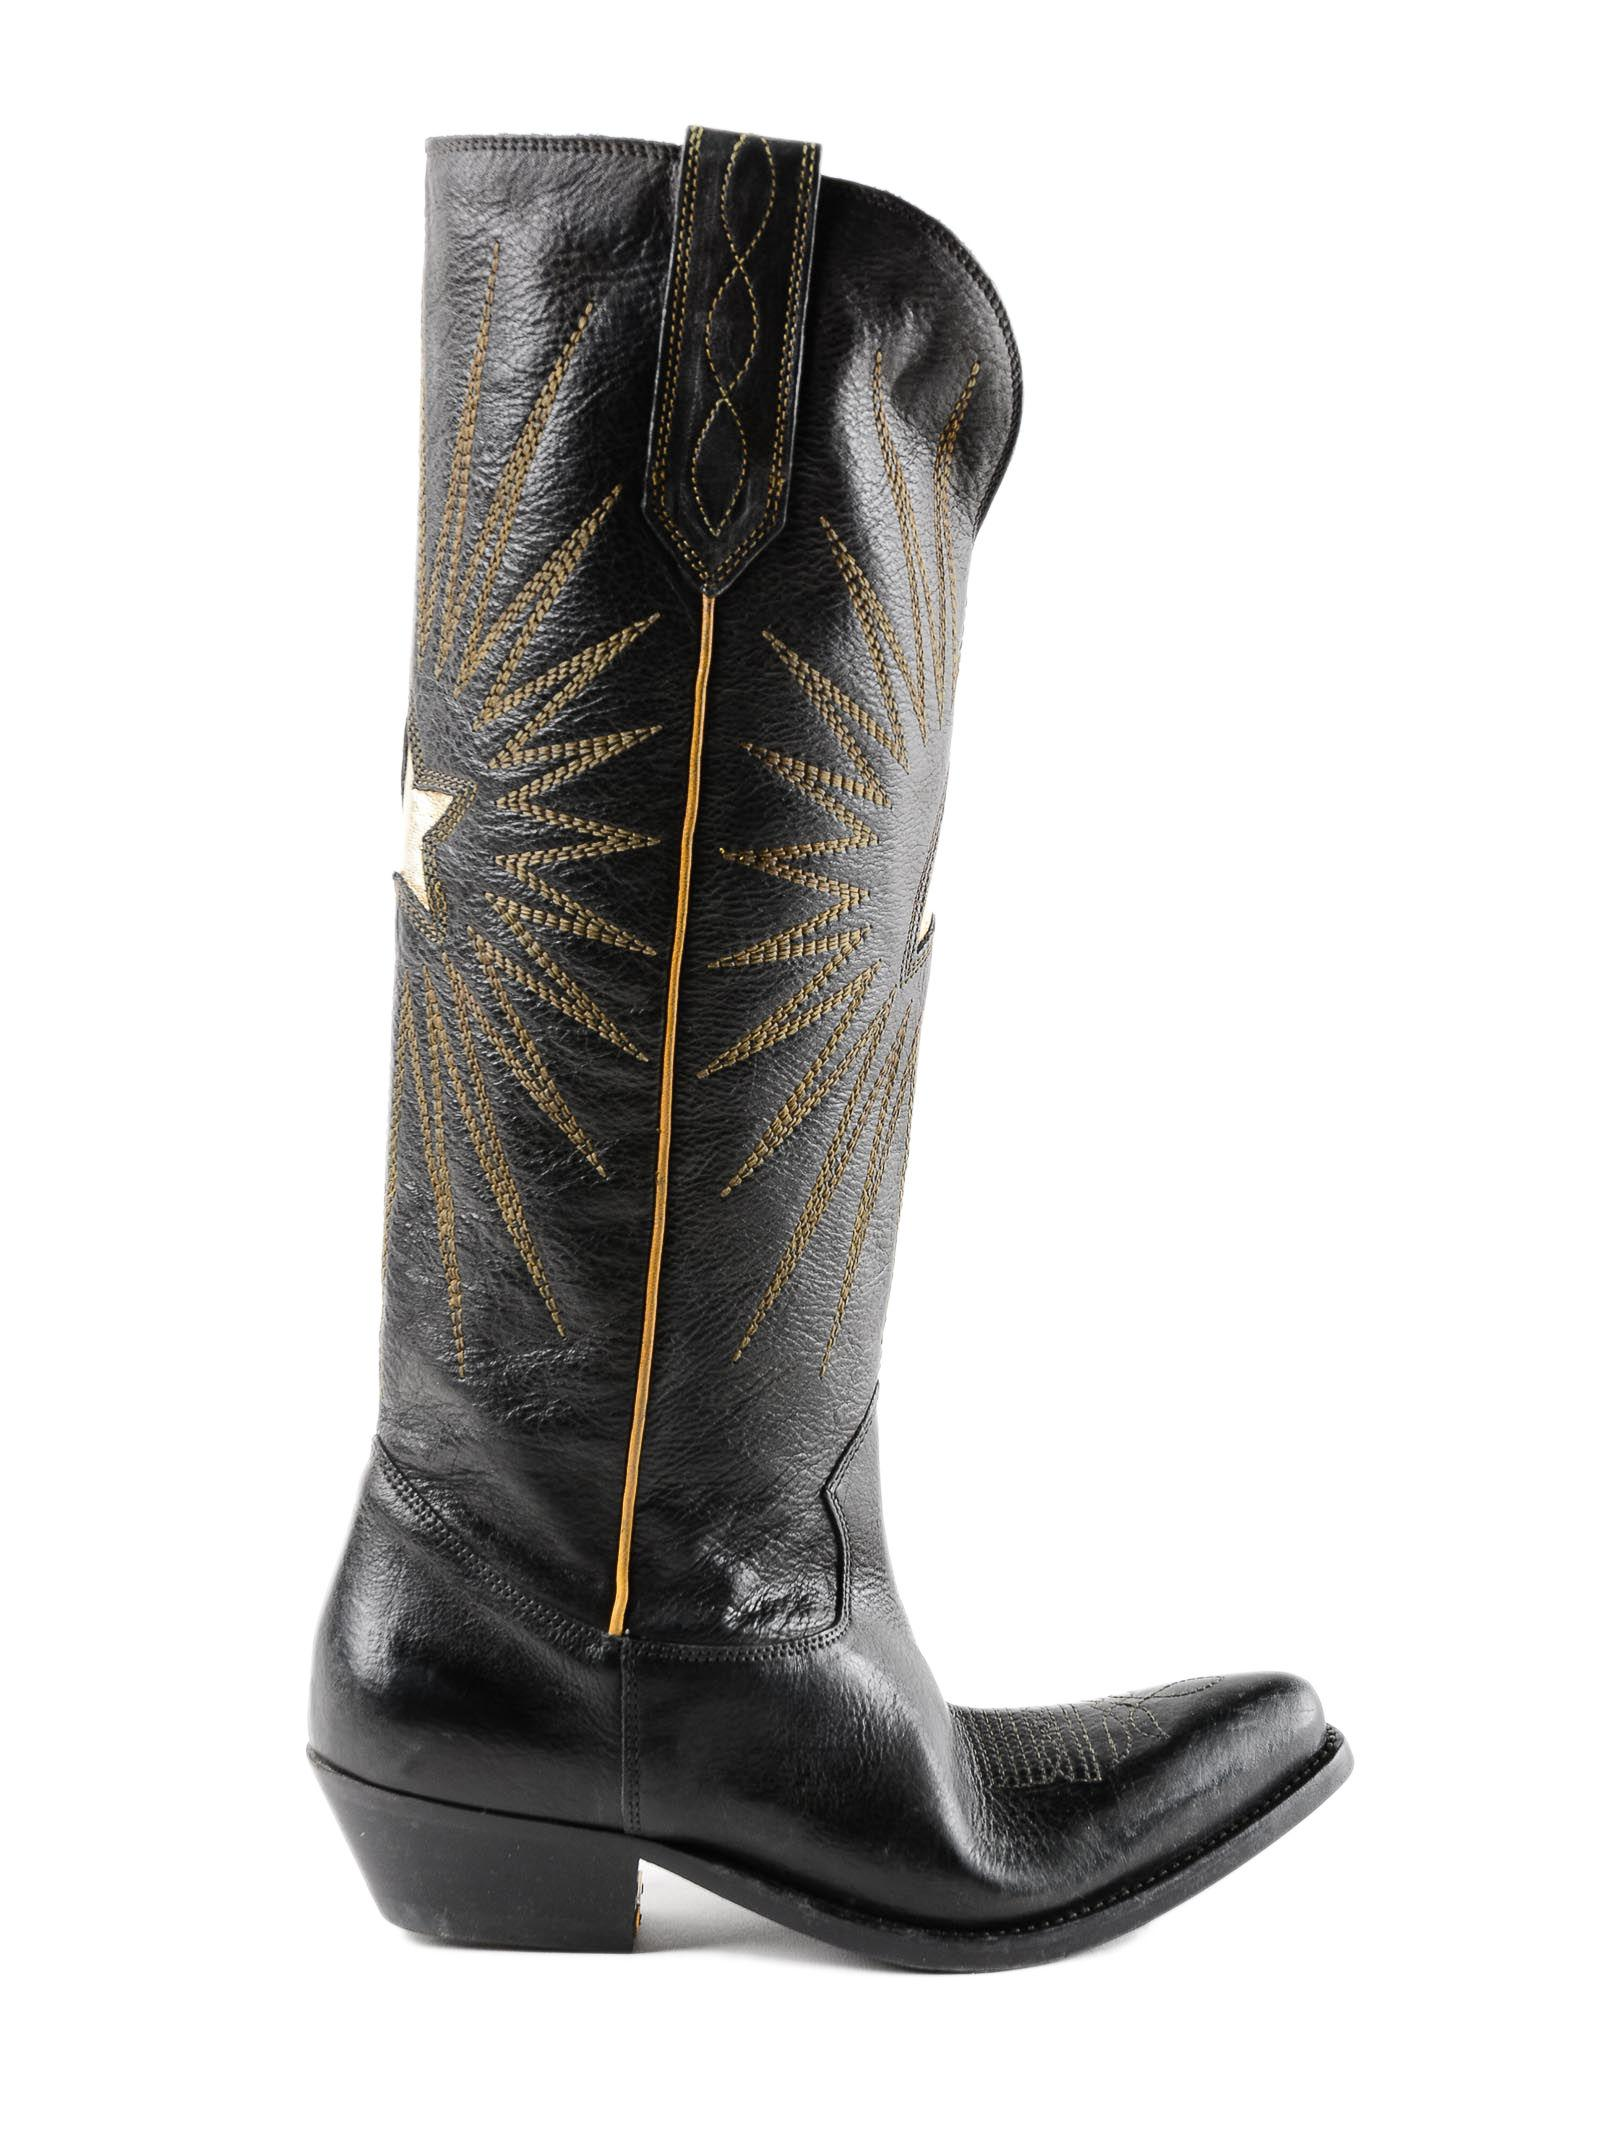 4297351daf3f Lyst - Golden Goose Deluxe Brand Boots Wish Star in Black